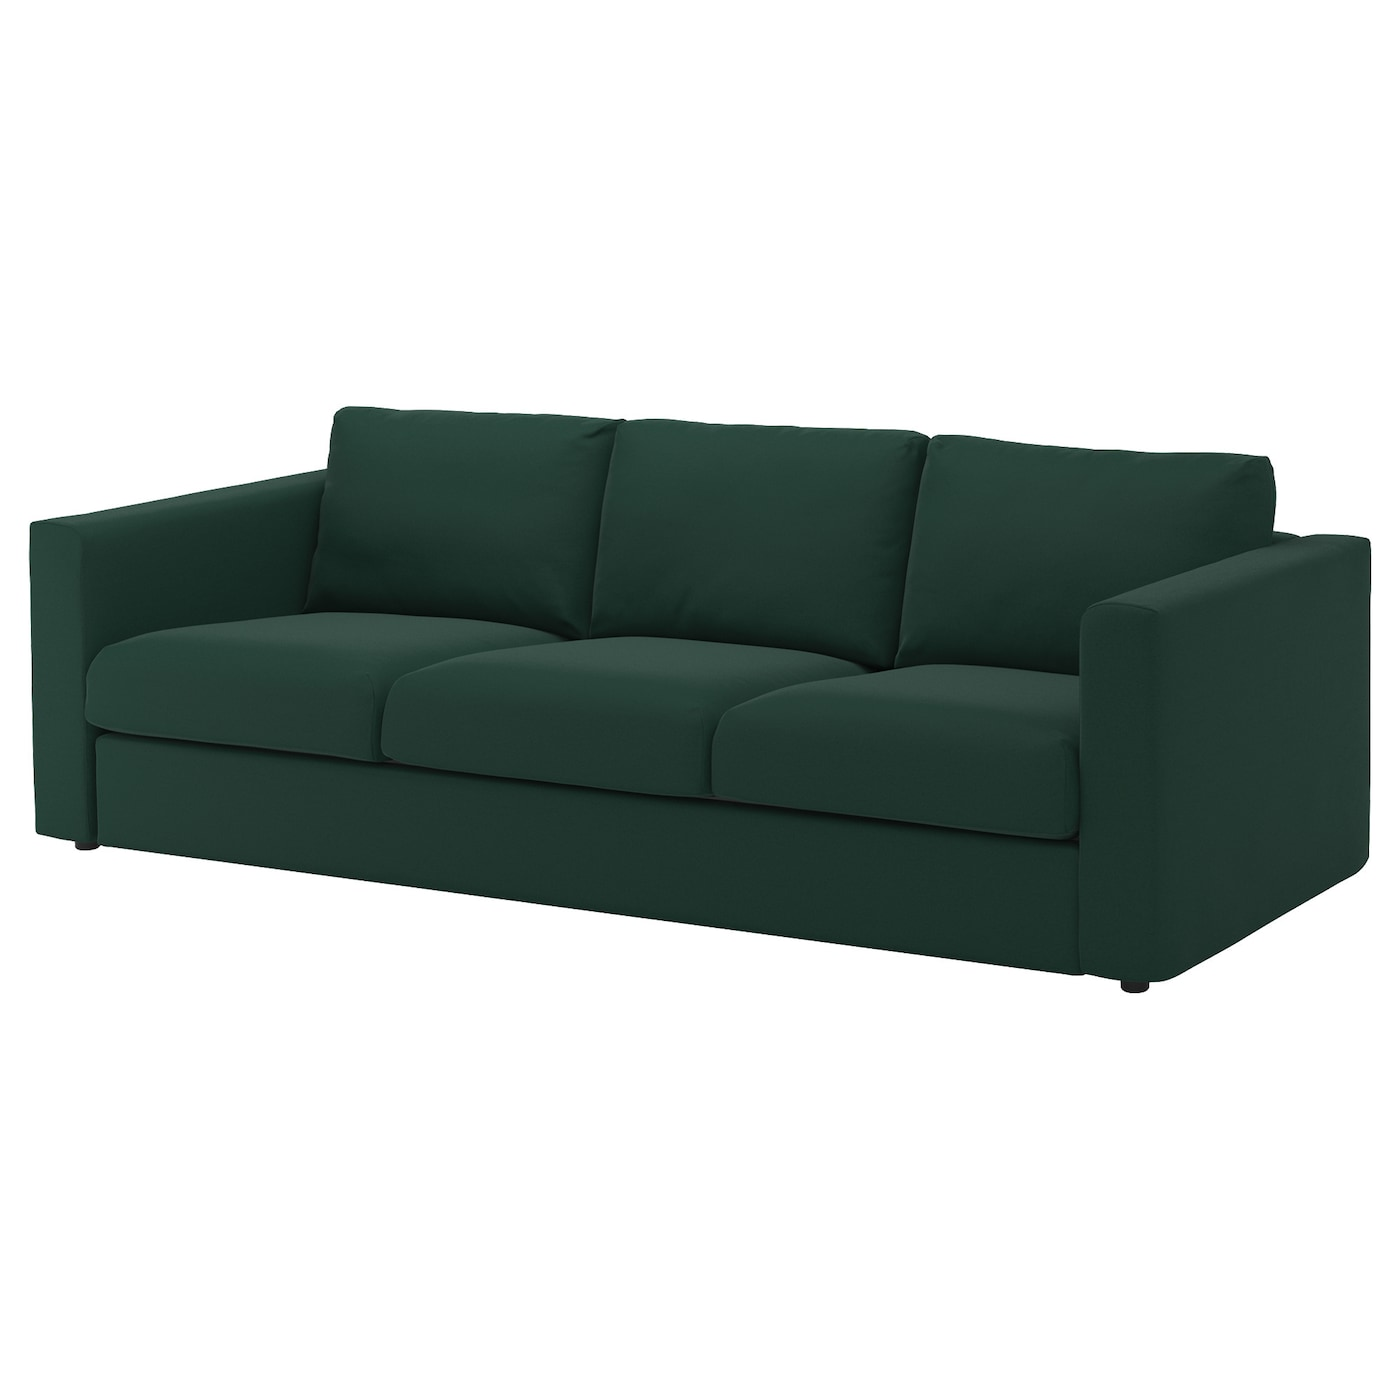 vimle cover for 3 seat sofa gunnared dark green ikea